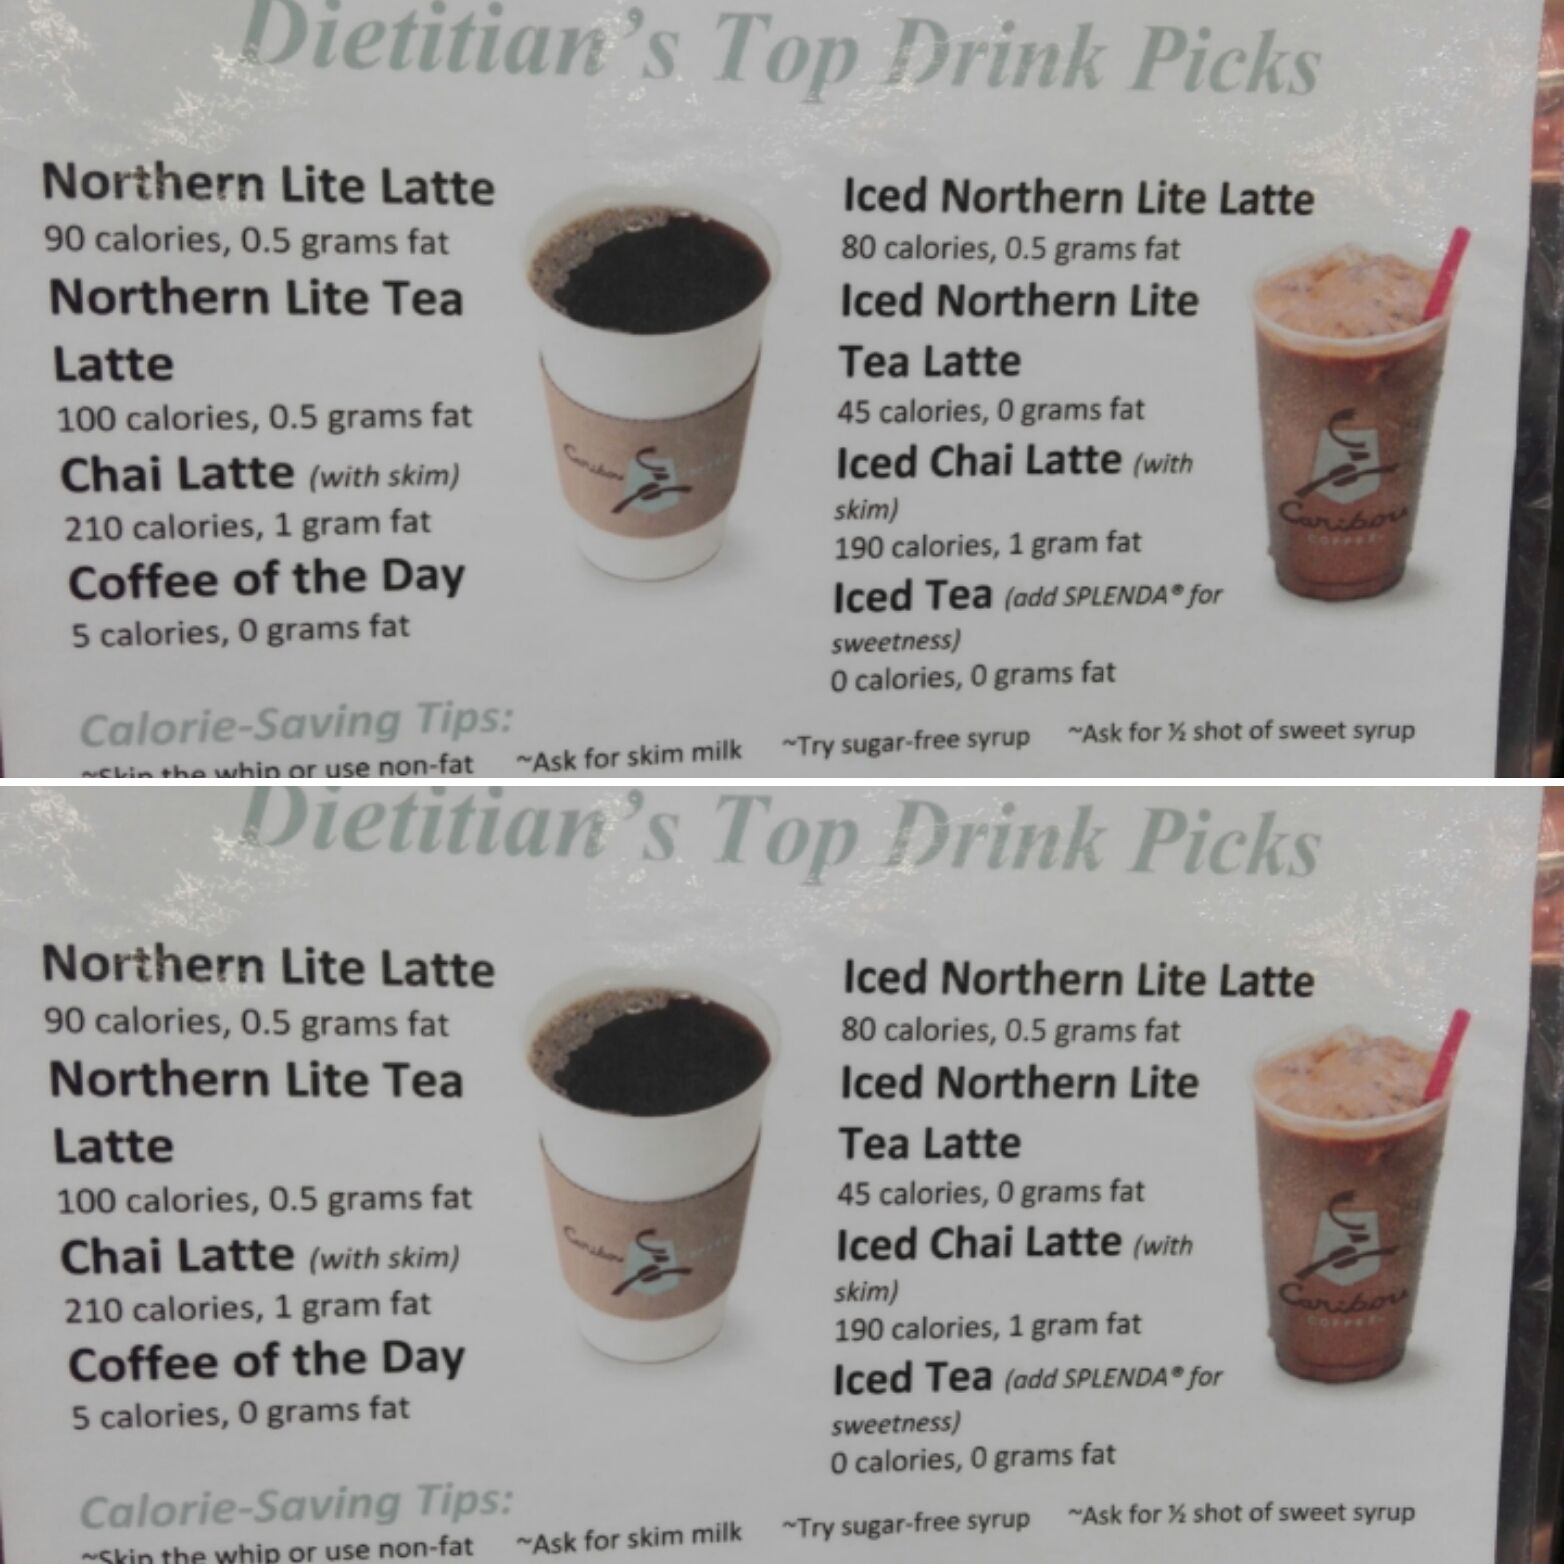 Best Choices At Caribou Coffee According To A Dietitian Caribou Coffee Drinks Caribou Coffee Coffee Drinks